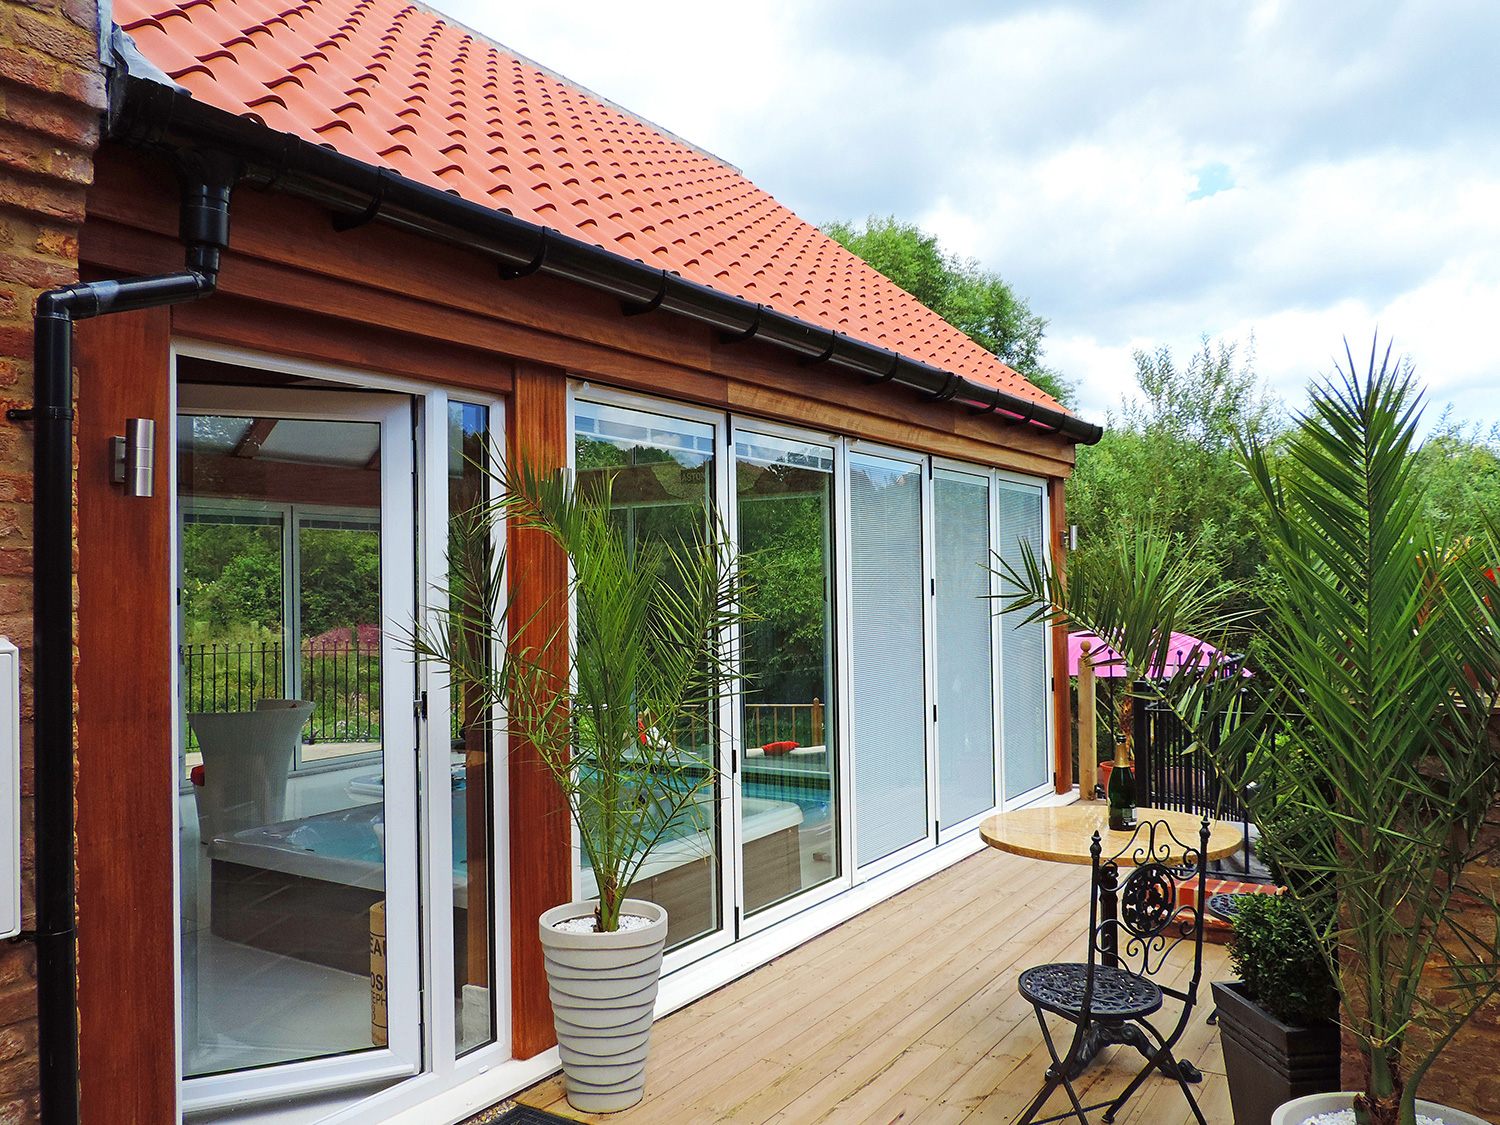 White Bi-Fold Doors and Tile Effect Roof